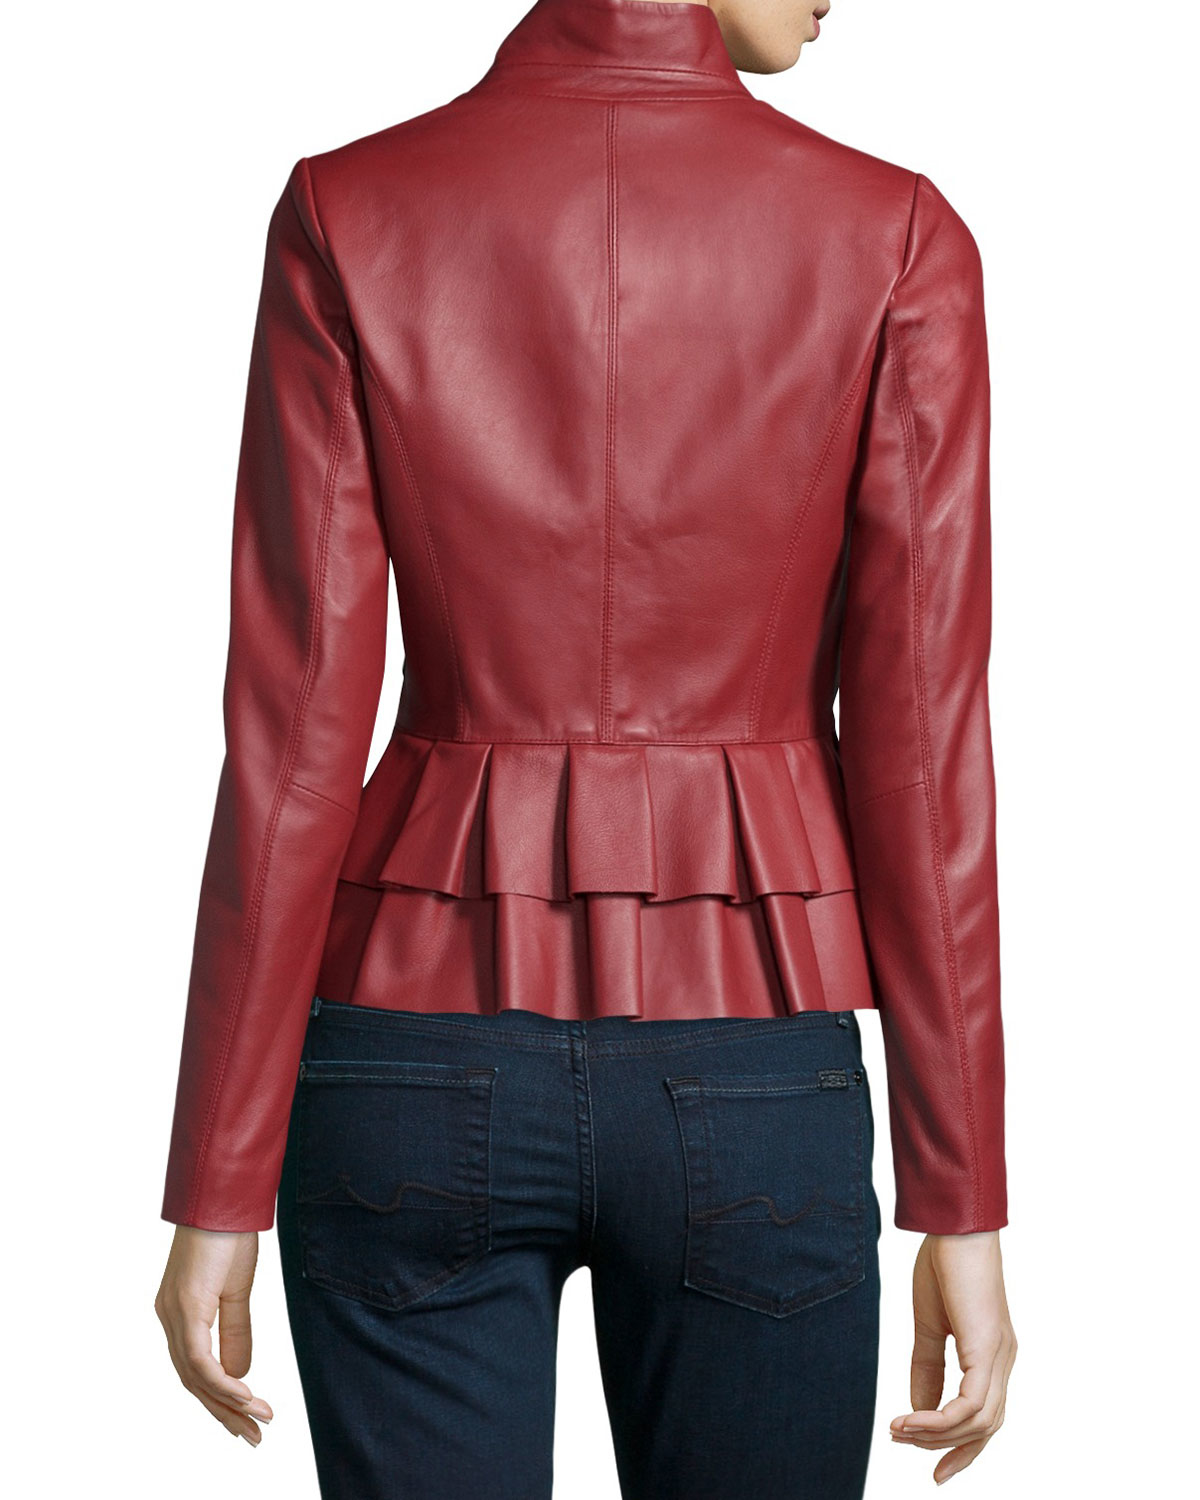 Find peplum leather jacket at ShopStyle. Shop the latest collection of peplum leather jacket from the most popular stores - all in one place.